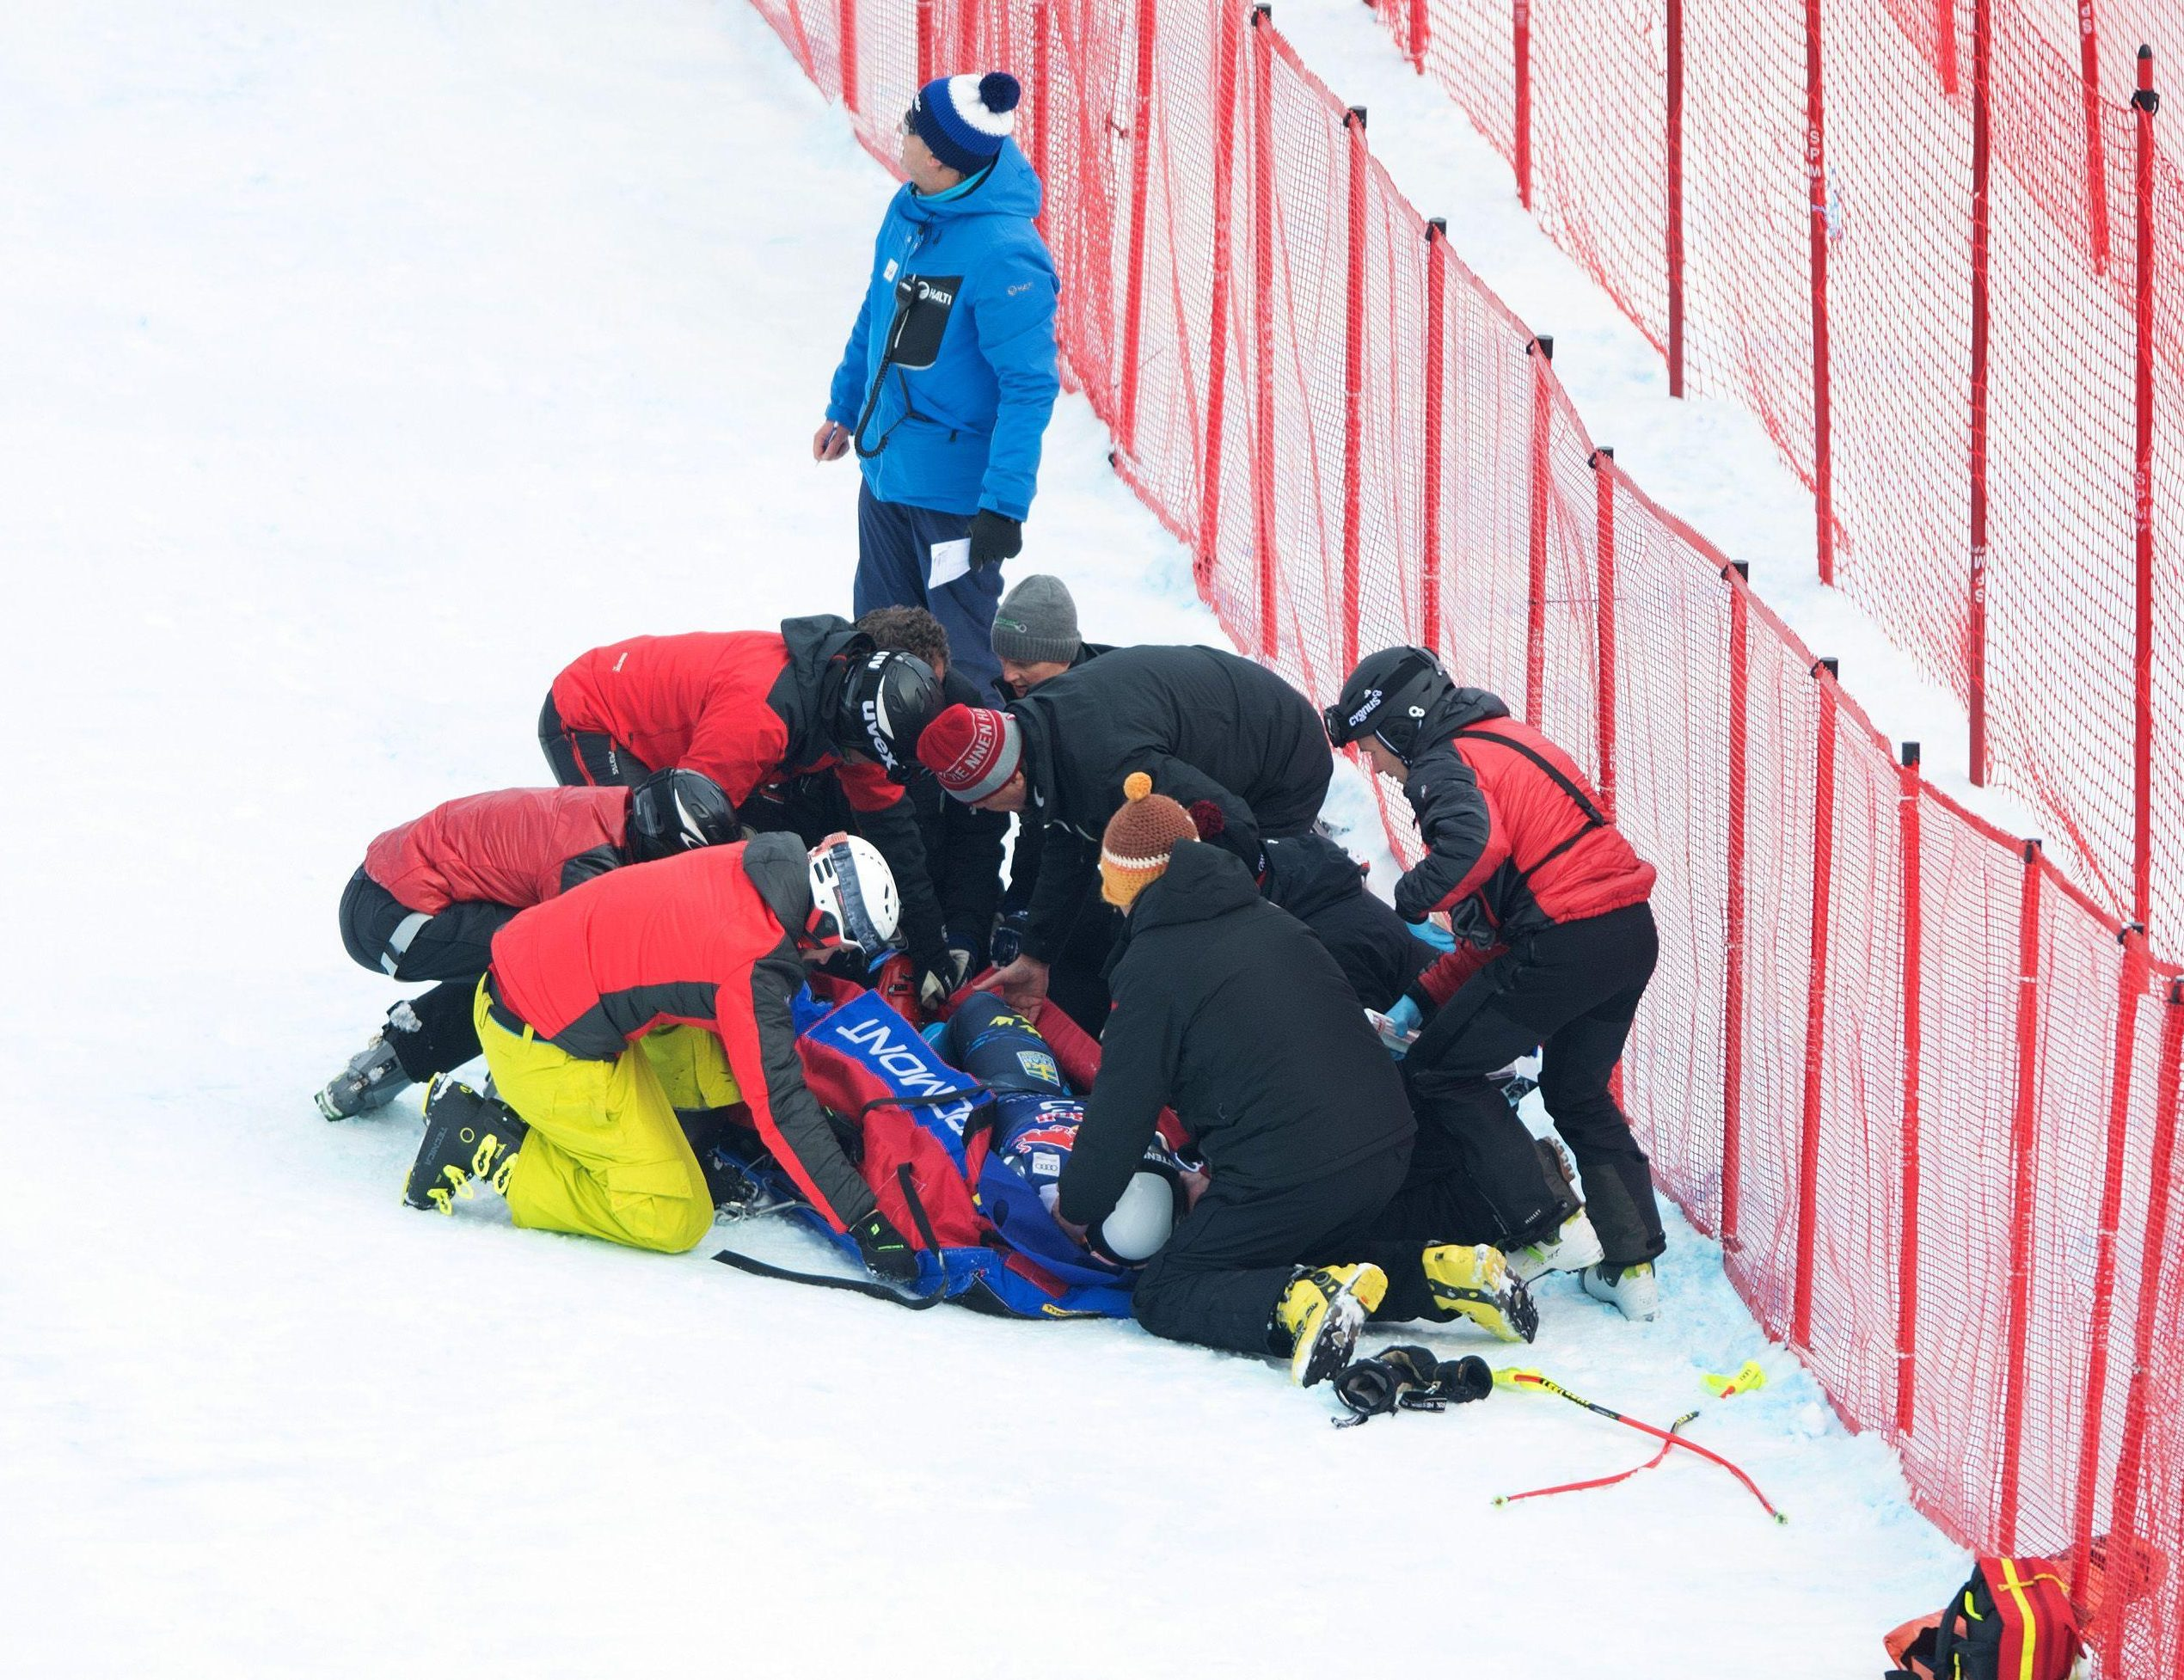 He crashed into the safety netting at the side of the piste and was attended to almost immediately